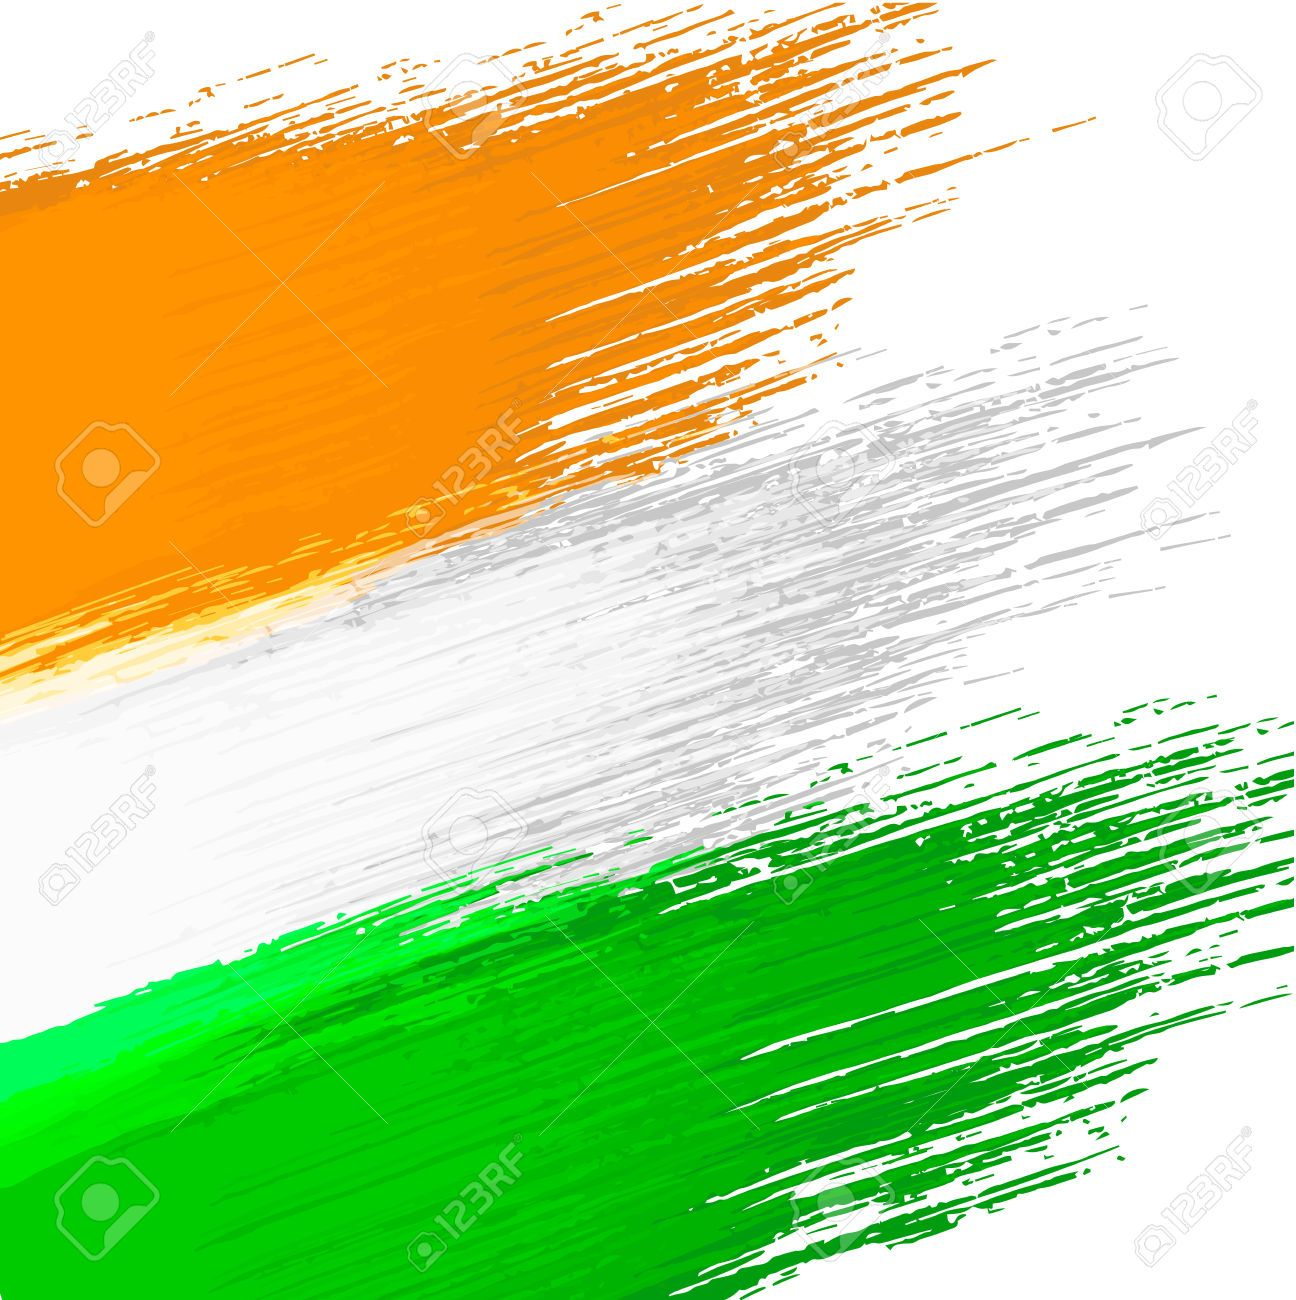 Grunge Background In Colors Of Indian Flag Indian Flag Indian Flag Colors Colours Of Indian Flag